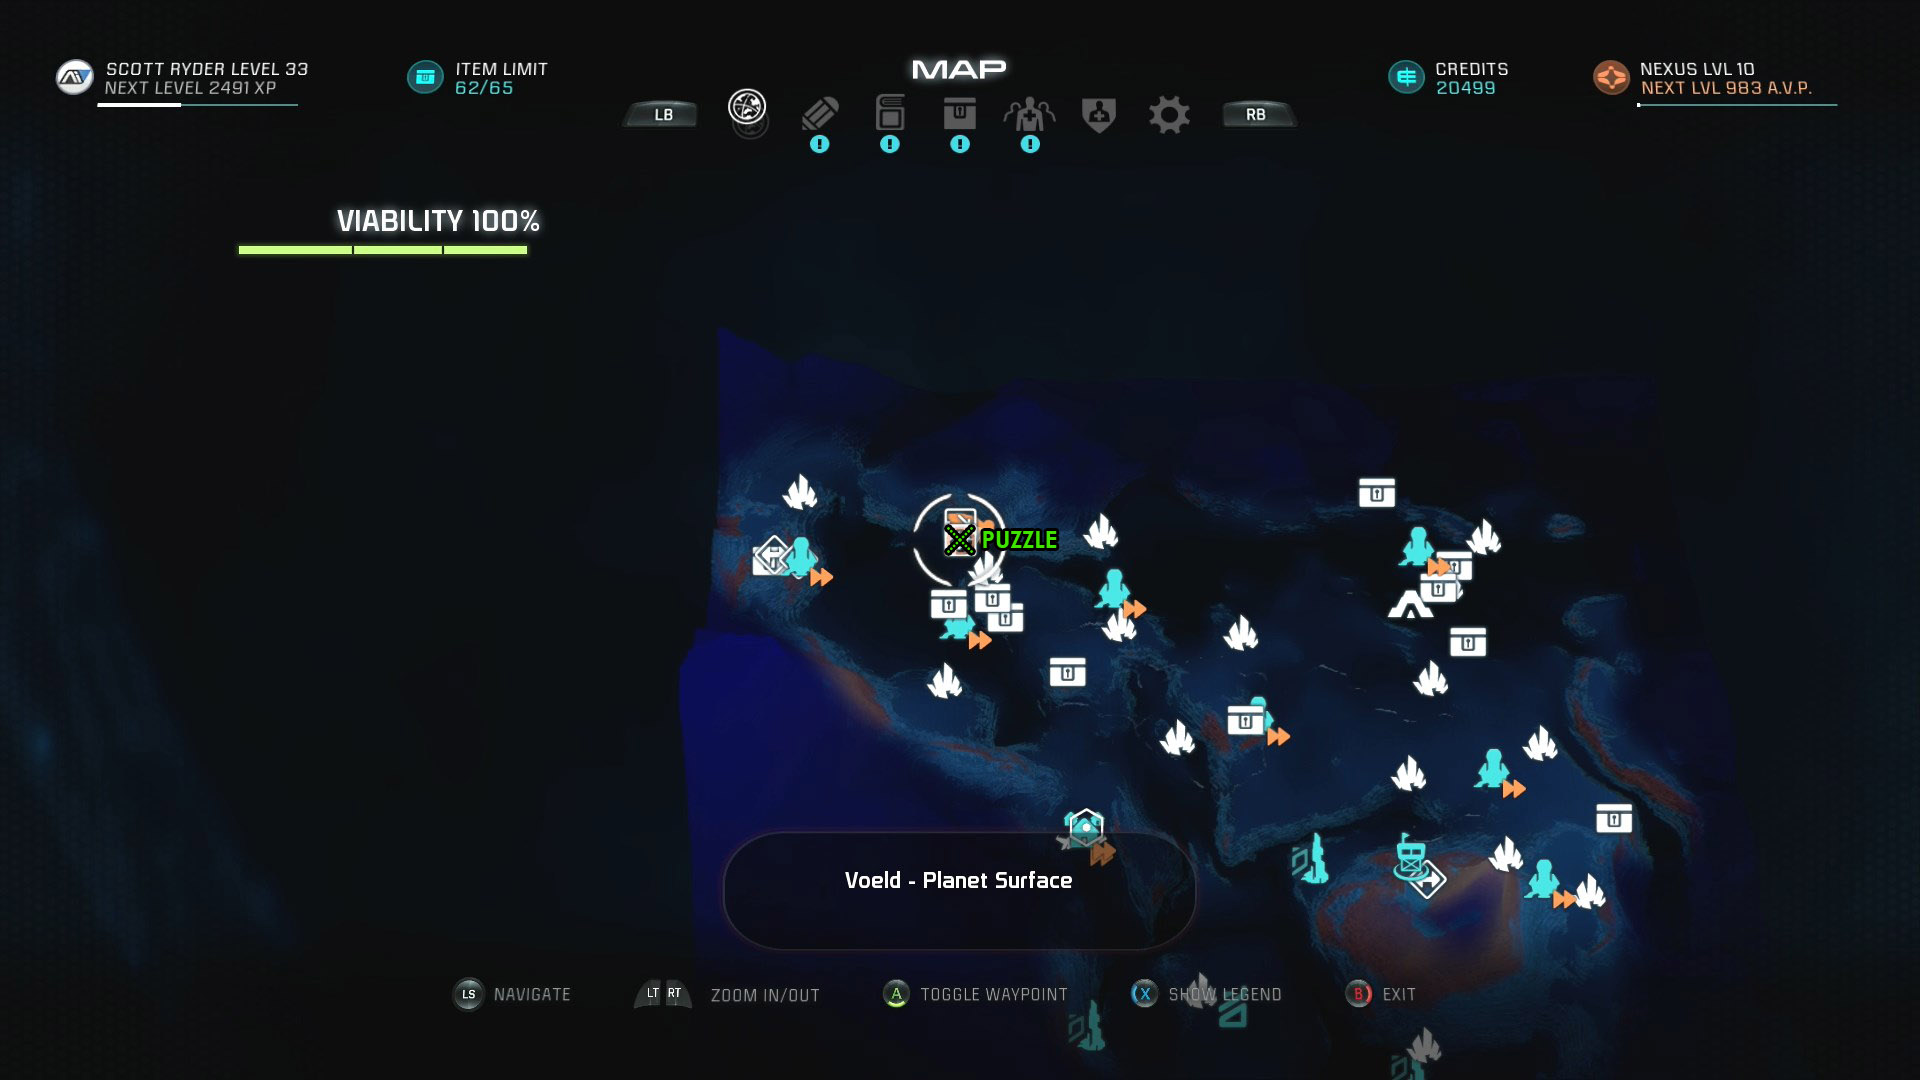 Mass Effect Andromeda Remnant Decryption Puzzle Location - Voeld - Task Subjugation